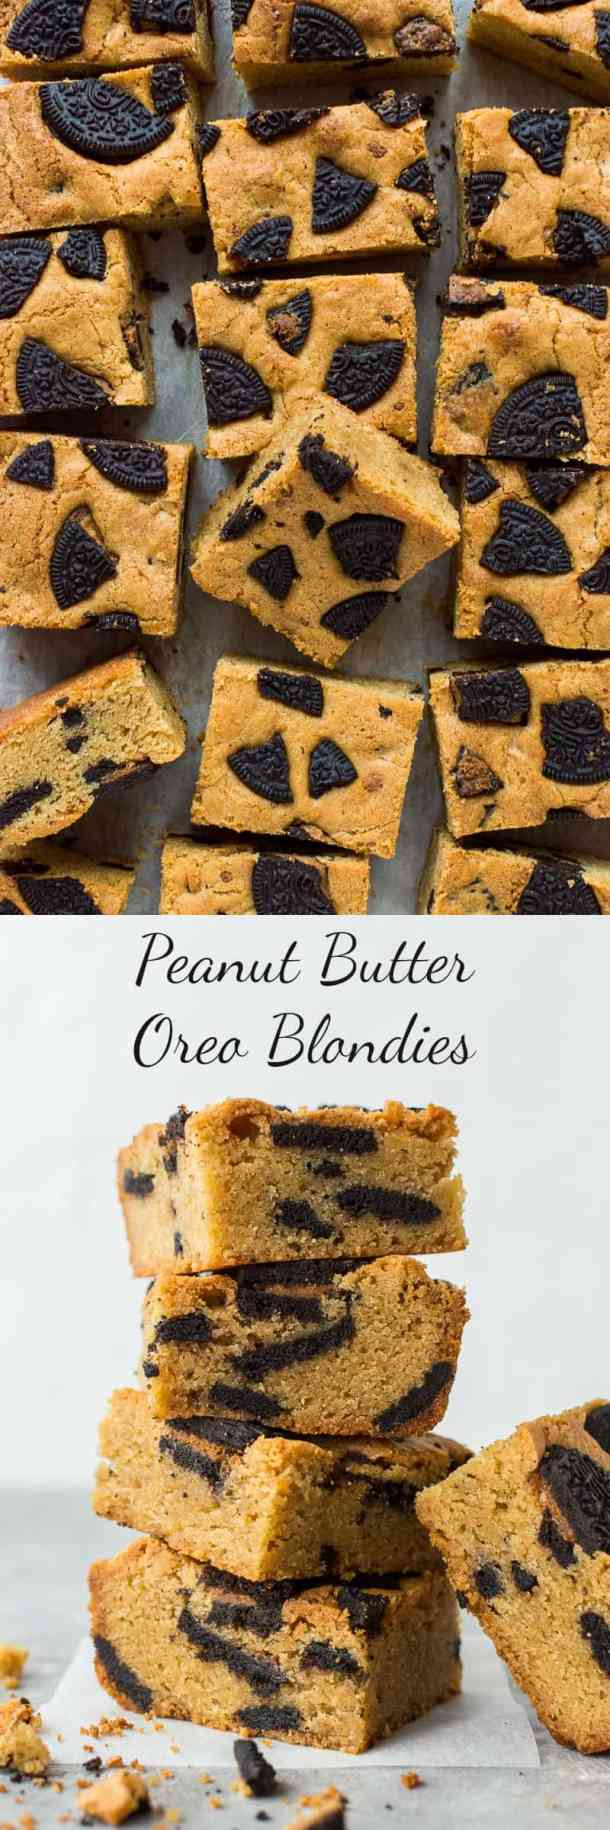 Peanut Butter Oreo Blondies – easy chewy peanut butter blondies filled with tasty pieces of peanut butter flavour Oreos; utterly heavenly! #peanutbutter #Oreo #blondies #baking